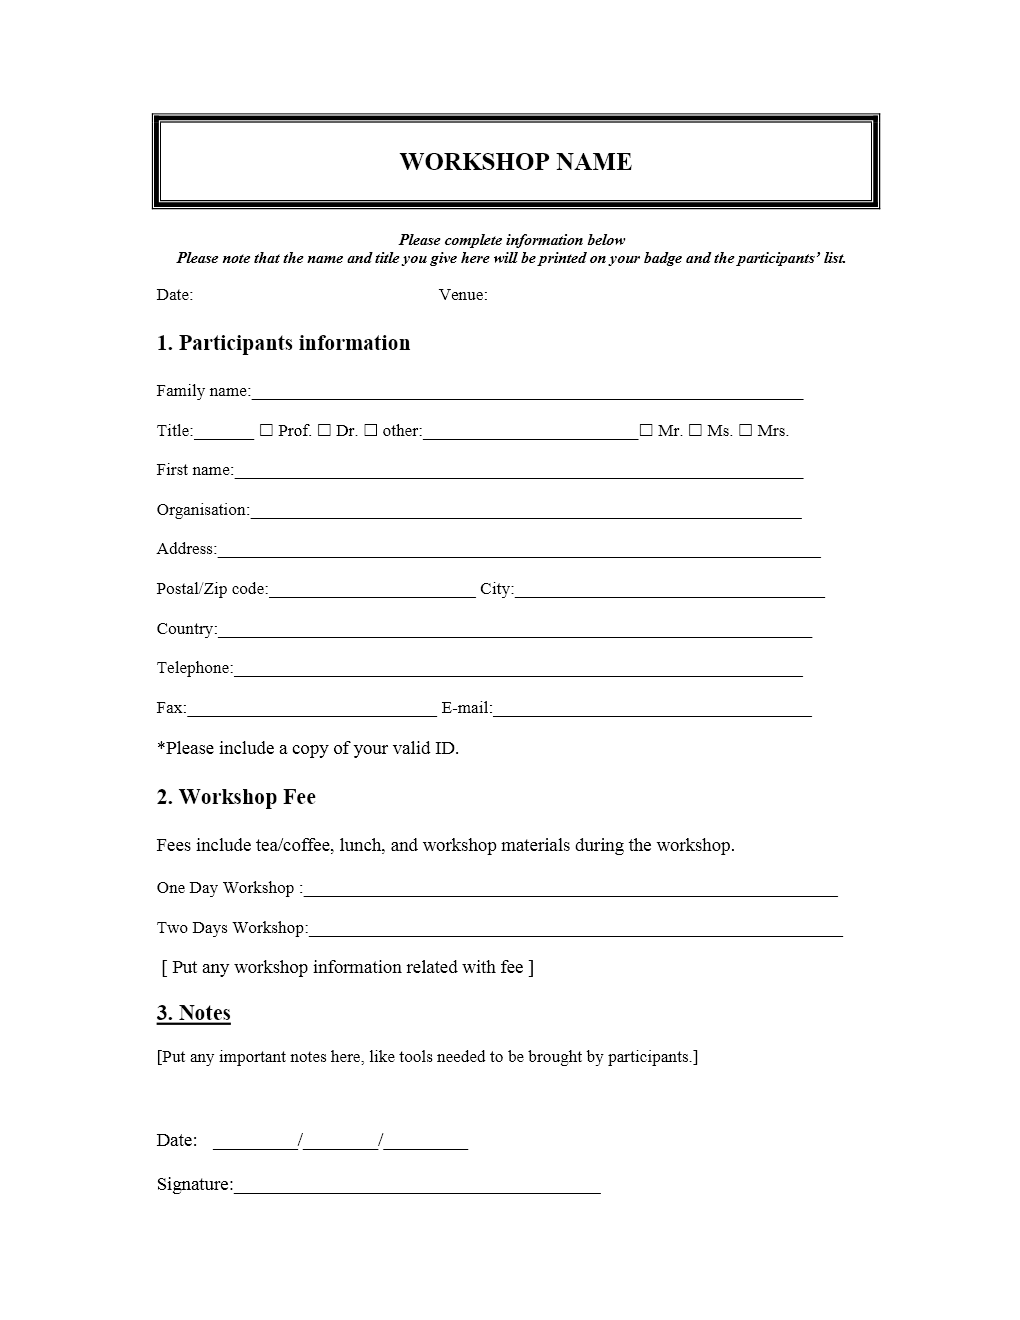 registration form template   April.onthemarch.co